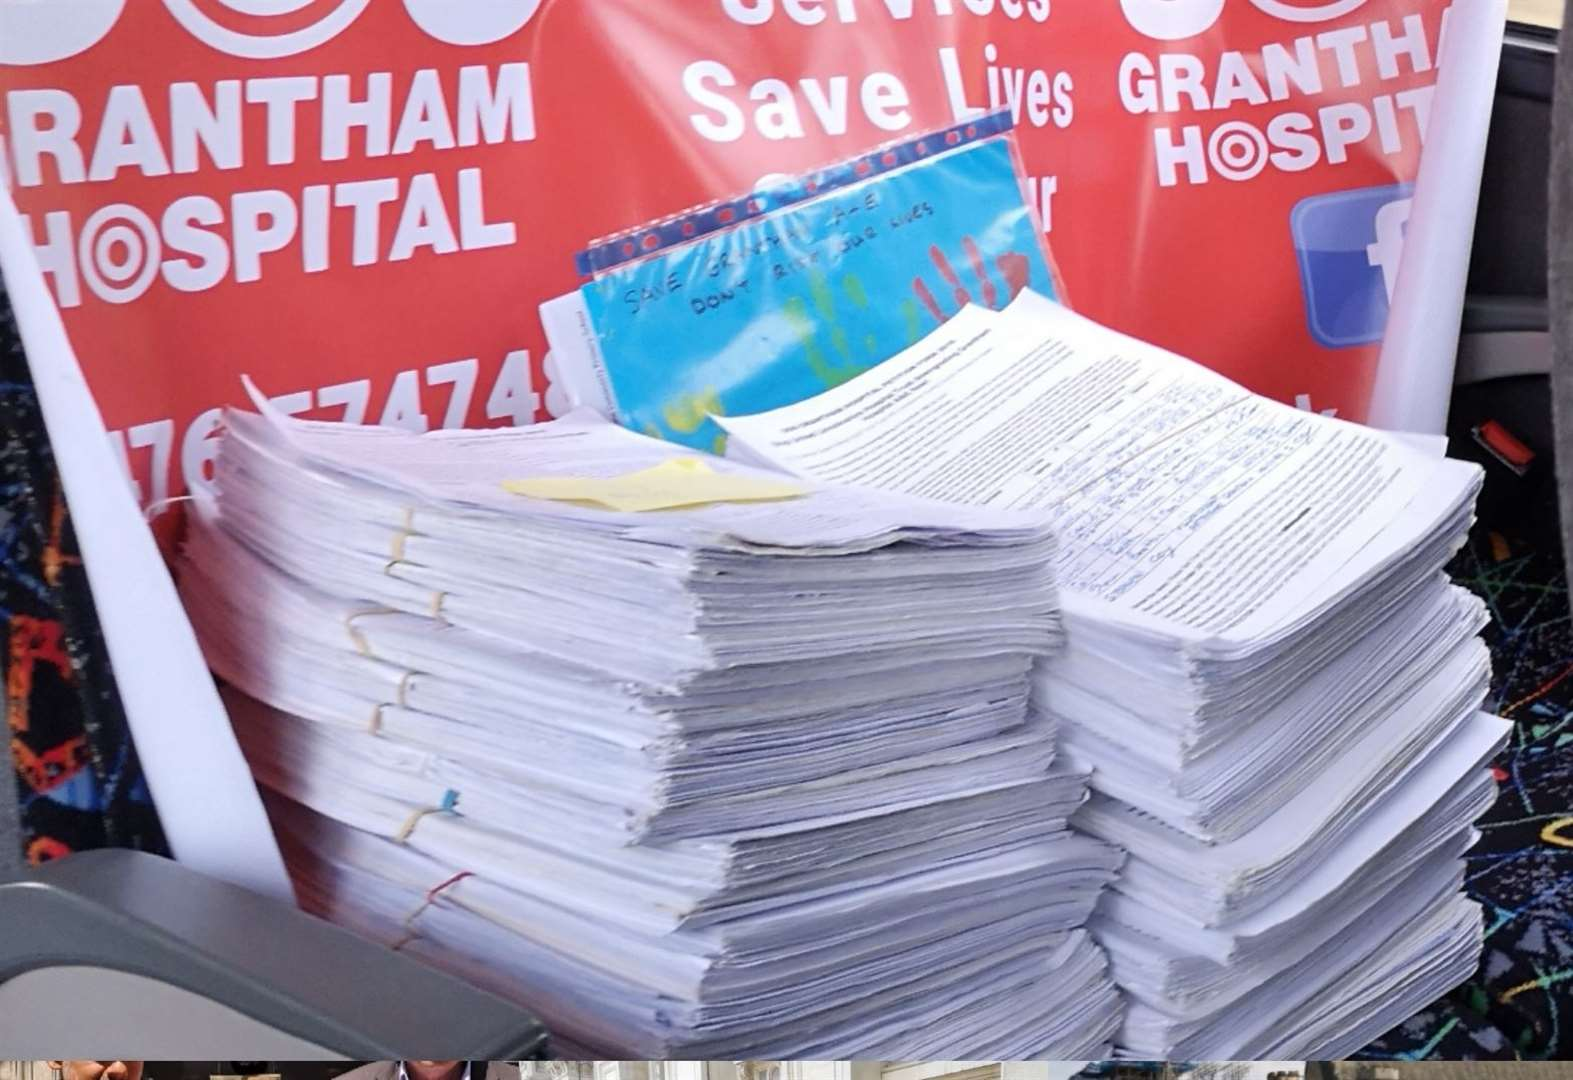 Campaigner presents petition containing more than 33,000 on-line signatures against Grantham A&E overnight closure